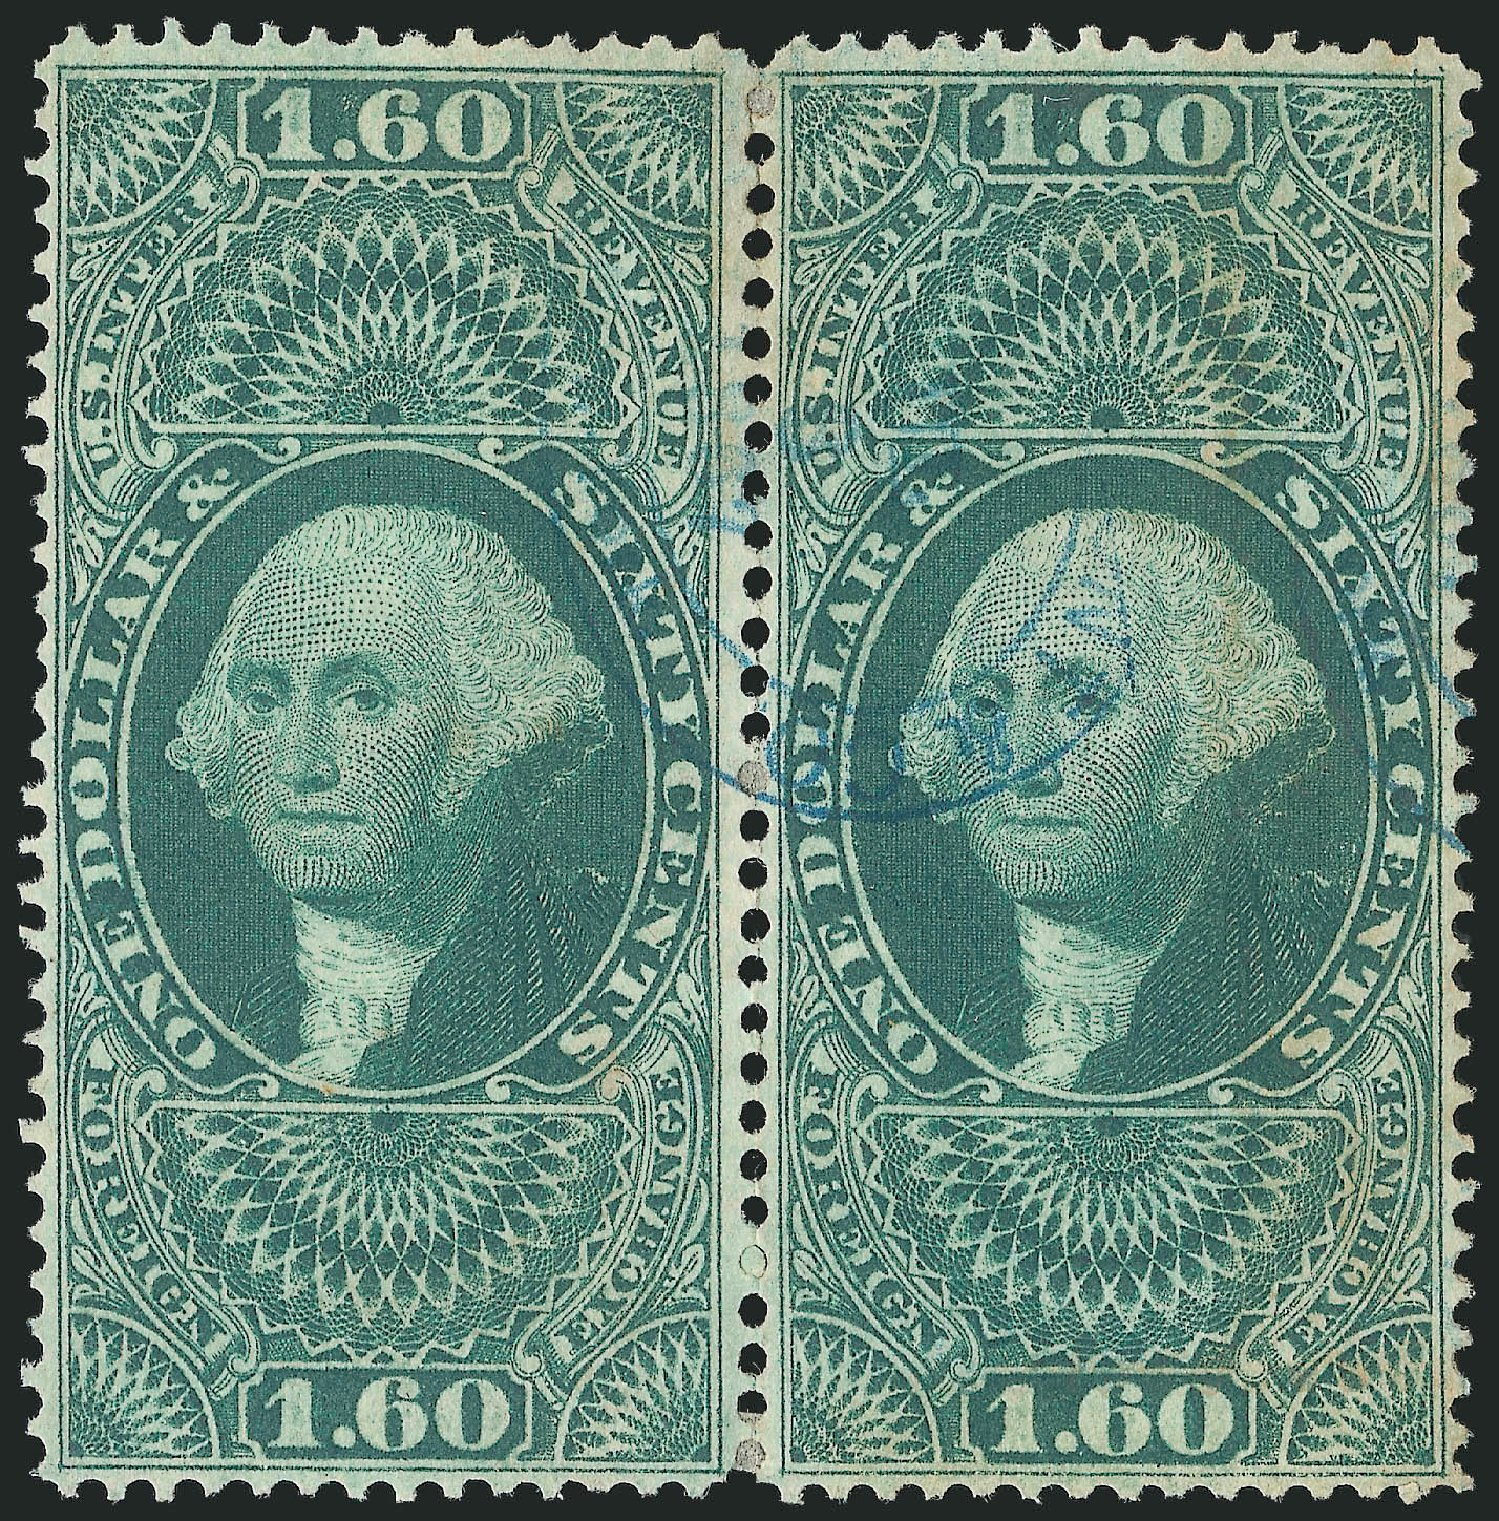 US Stamp Price Scott Catalogue R79 - US$1.60 1863 Revenue Foreign Exchange. Robert Siegel Auction Galleries, Dec 2014, Sale 1089, Lot 431